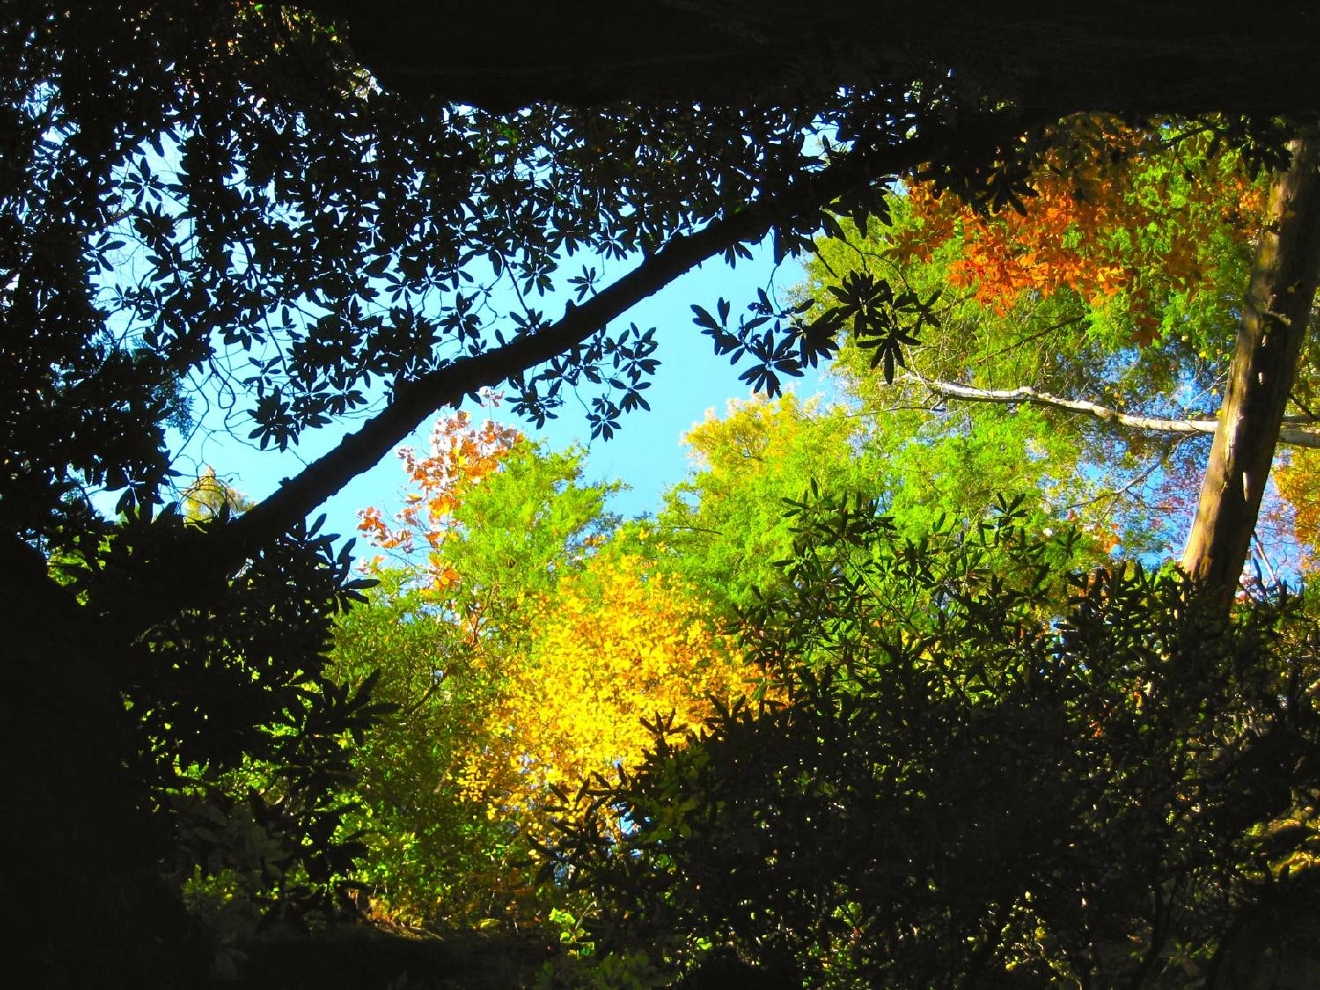 #2 - RED RIVER GORGE, KENTUCKY (Distance from Downtown Cincy: approx. 2.25 hours) / Image: Jen Seiser